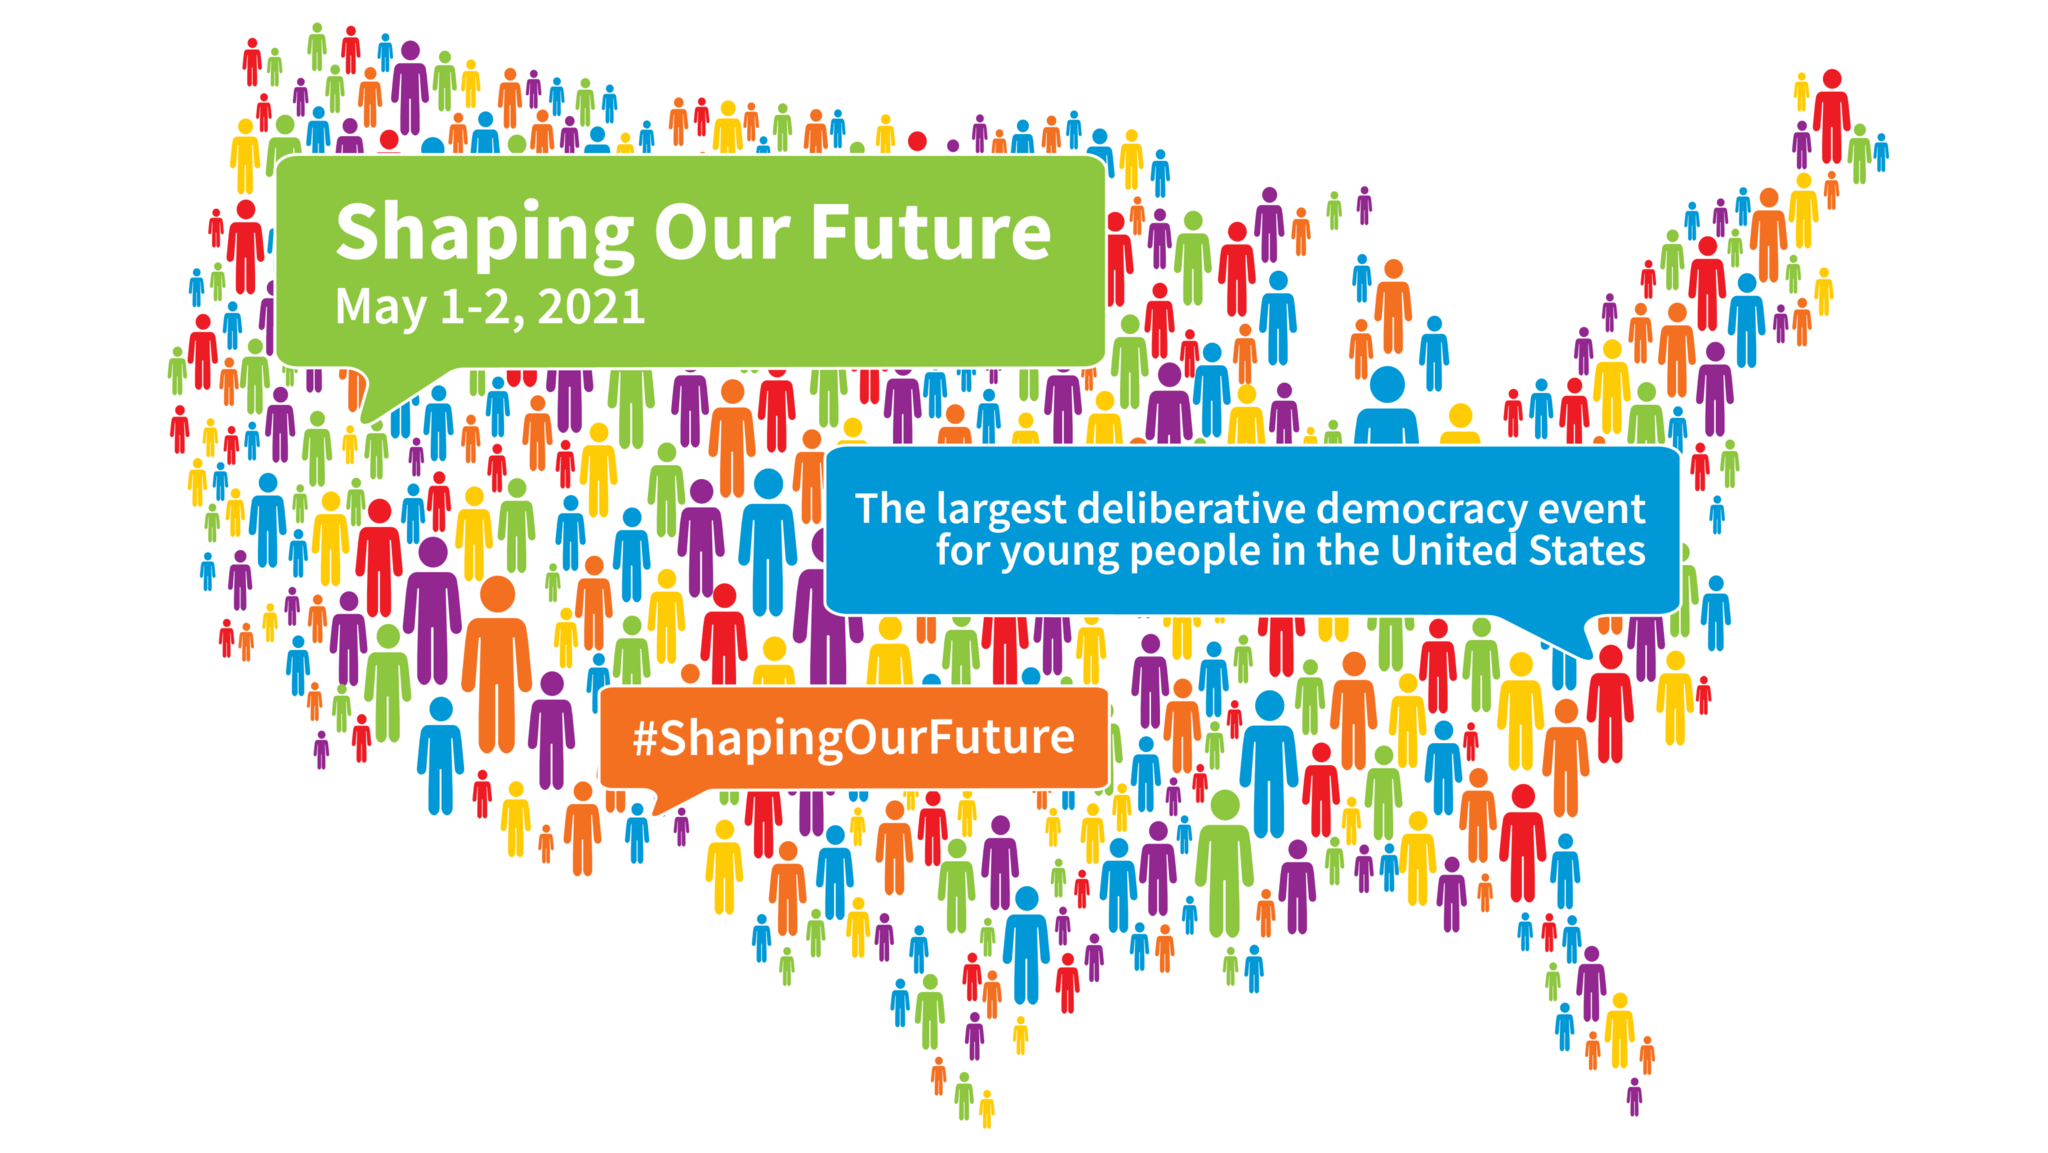 United States image made up of people figures in multiple colors. Shaping Our Future May 1-2, 2021